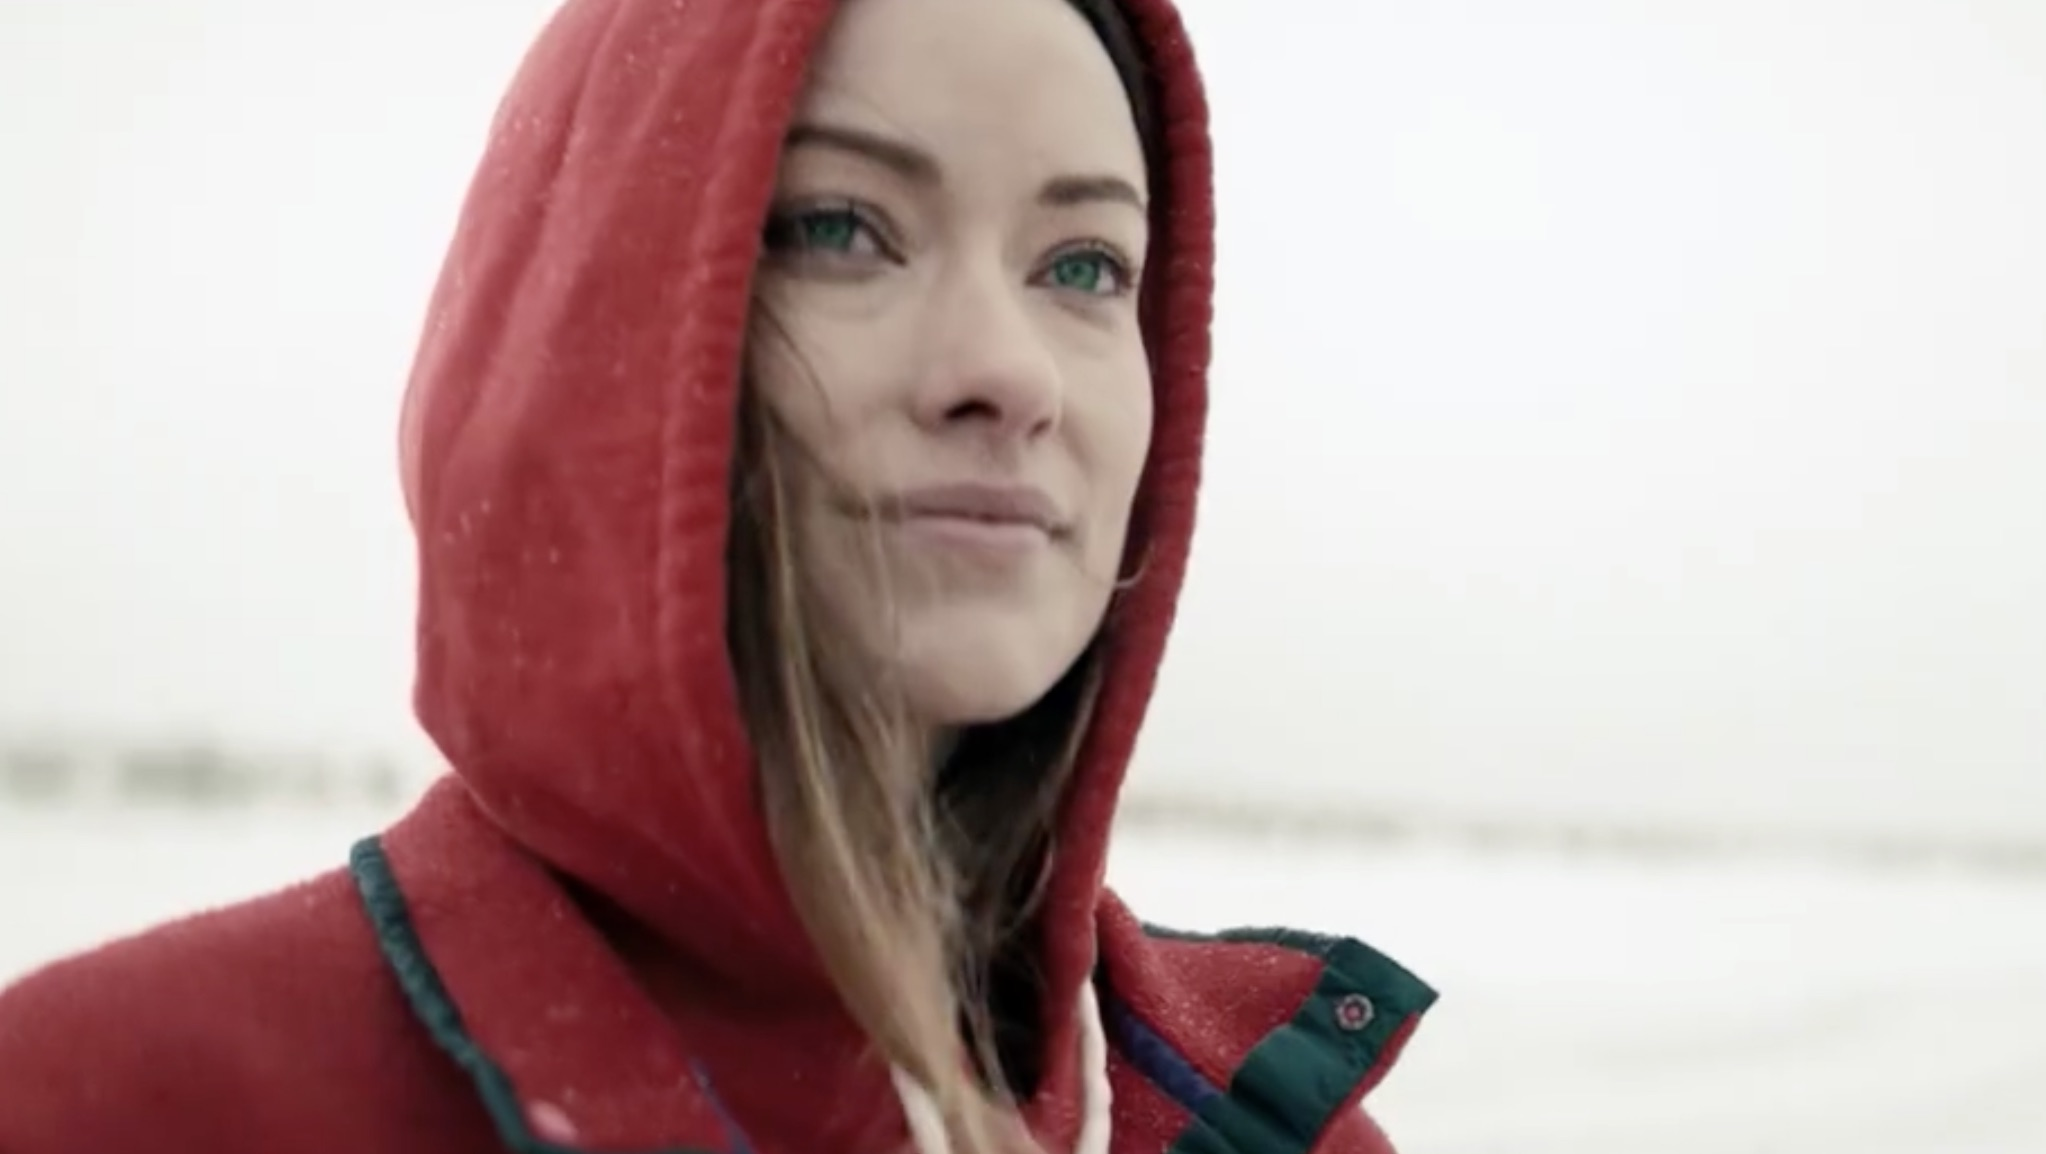 Olivia Wilde stars in this eye-opening PSA about Down syndrome